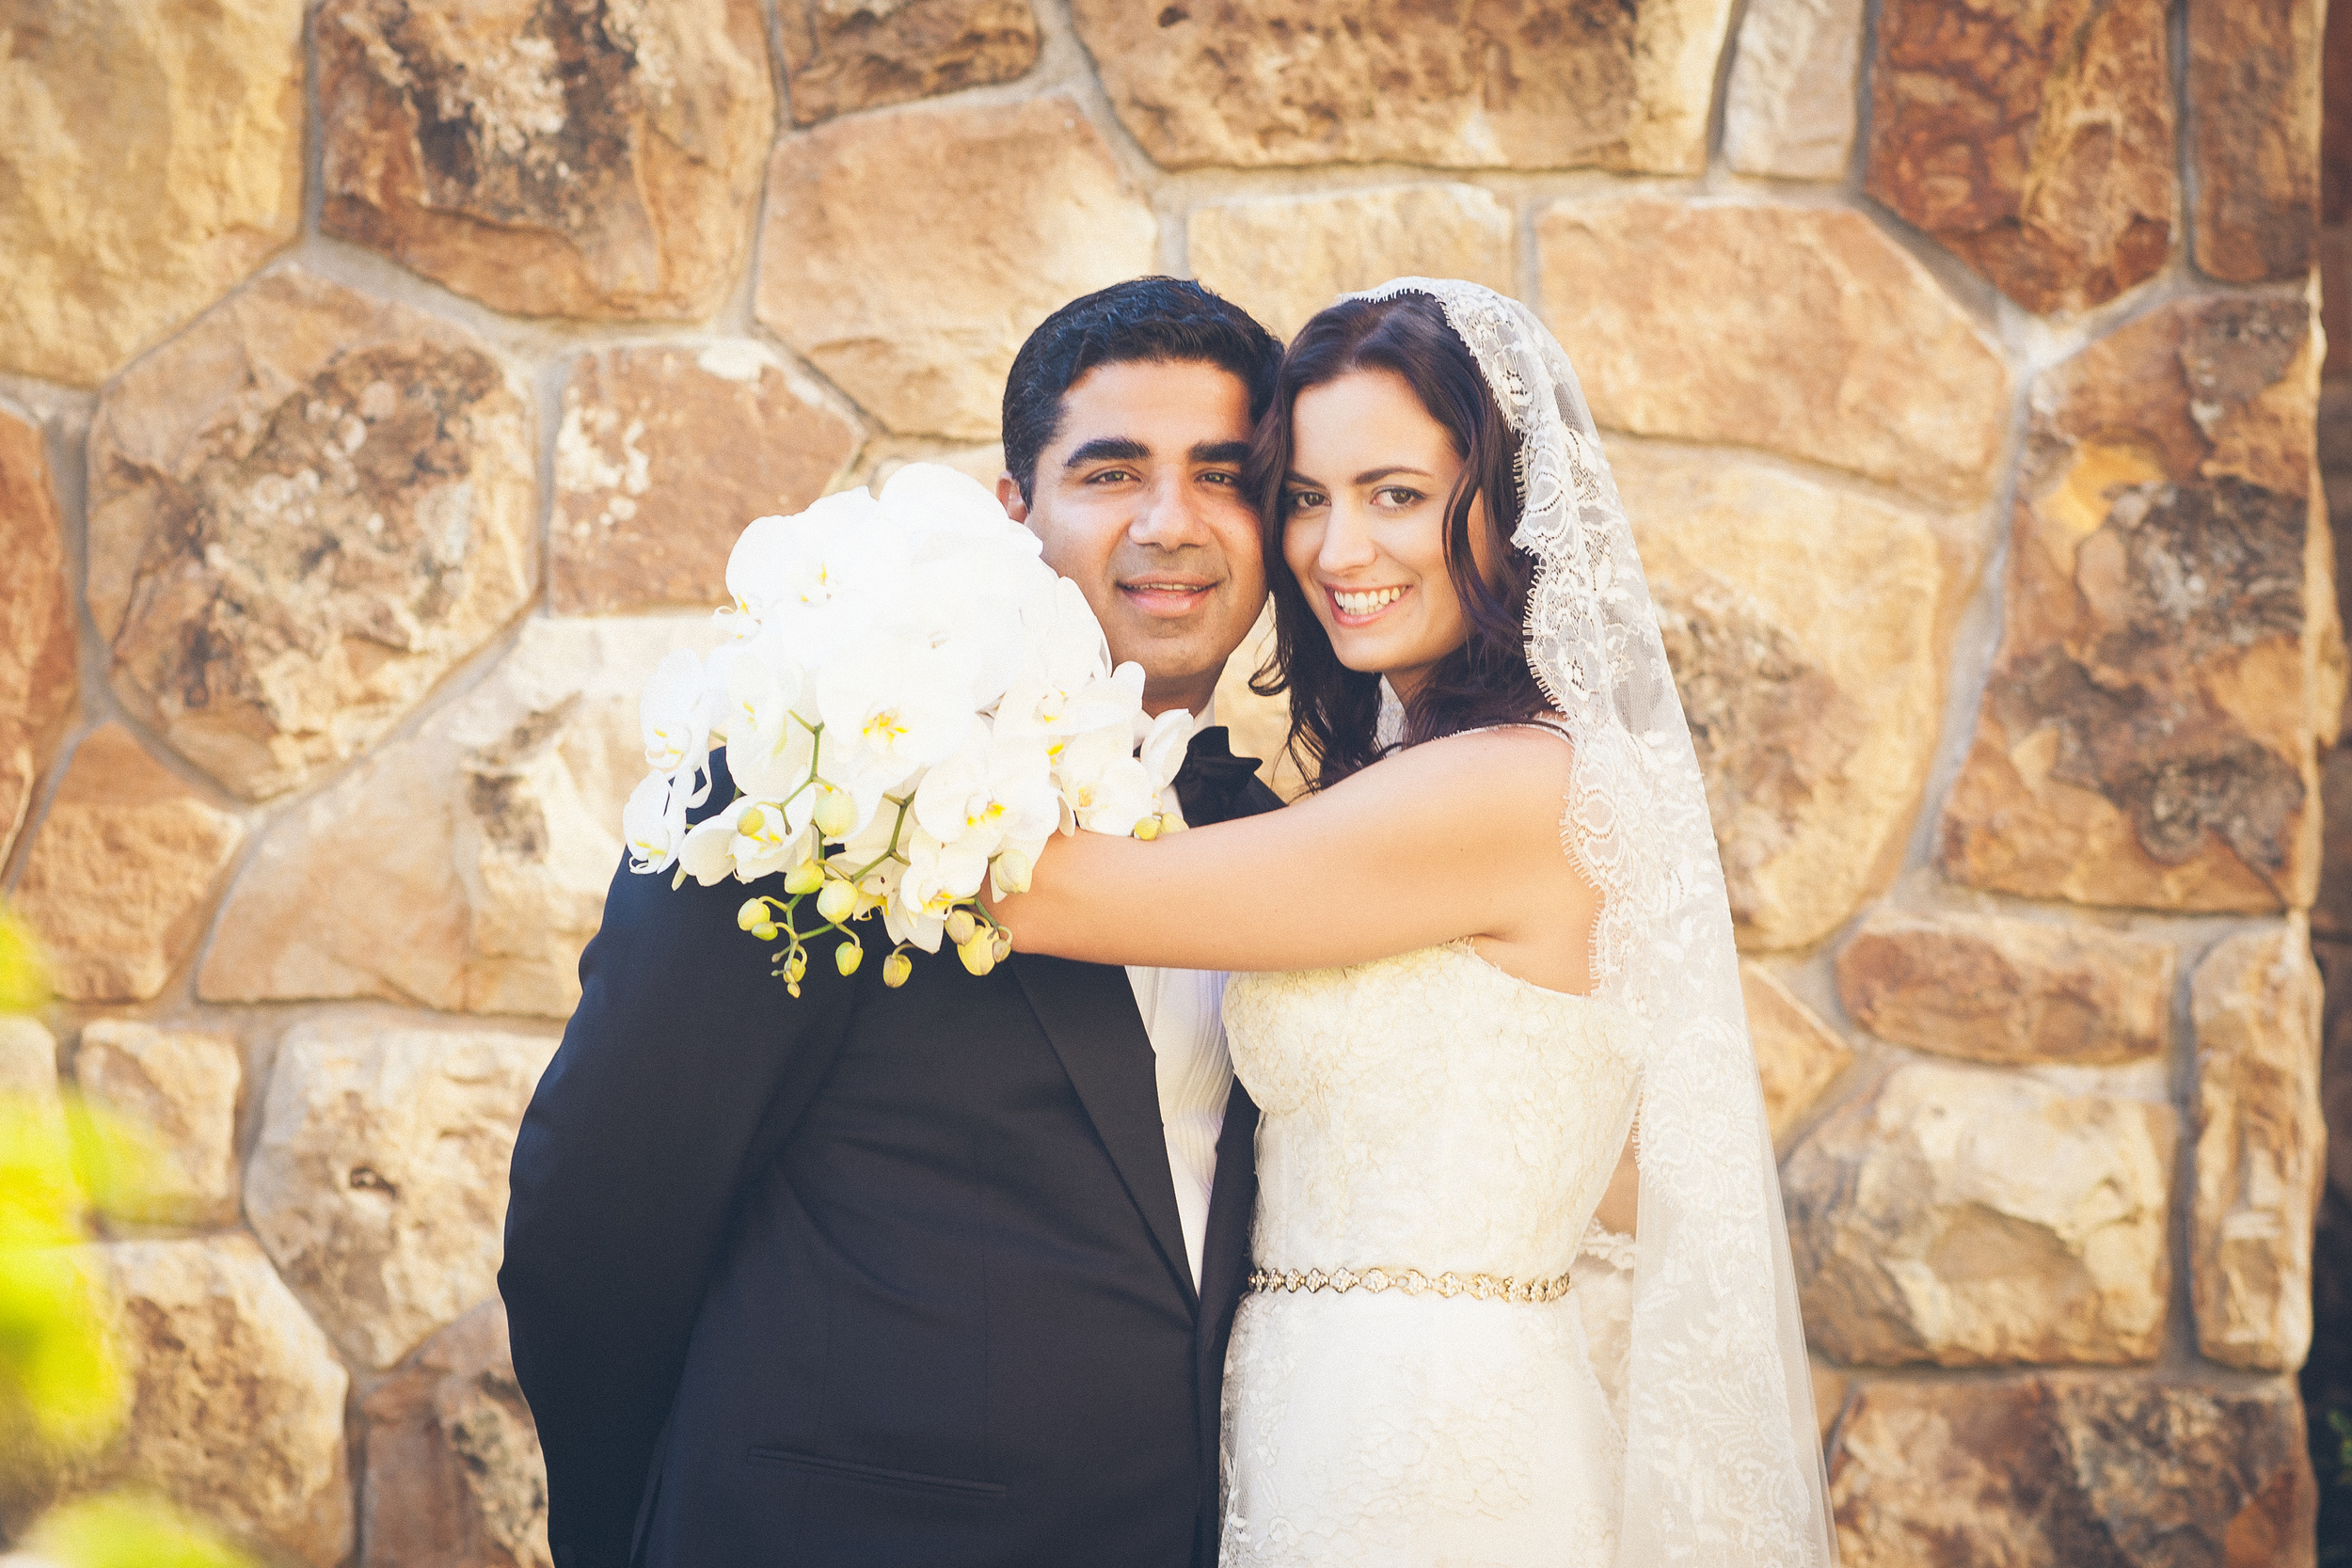 bridalbliss.com | portland wedding (venue) | photographer | Bridal Bliss Event Planning |